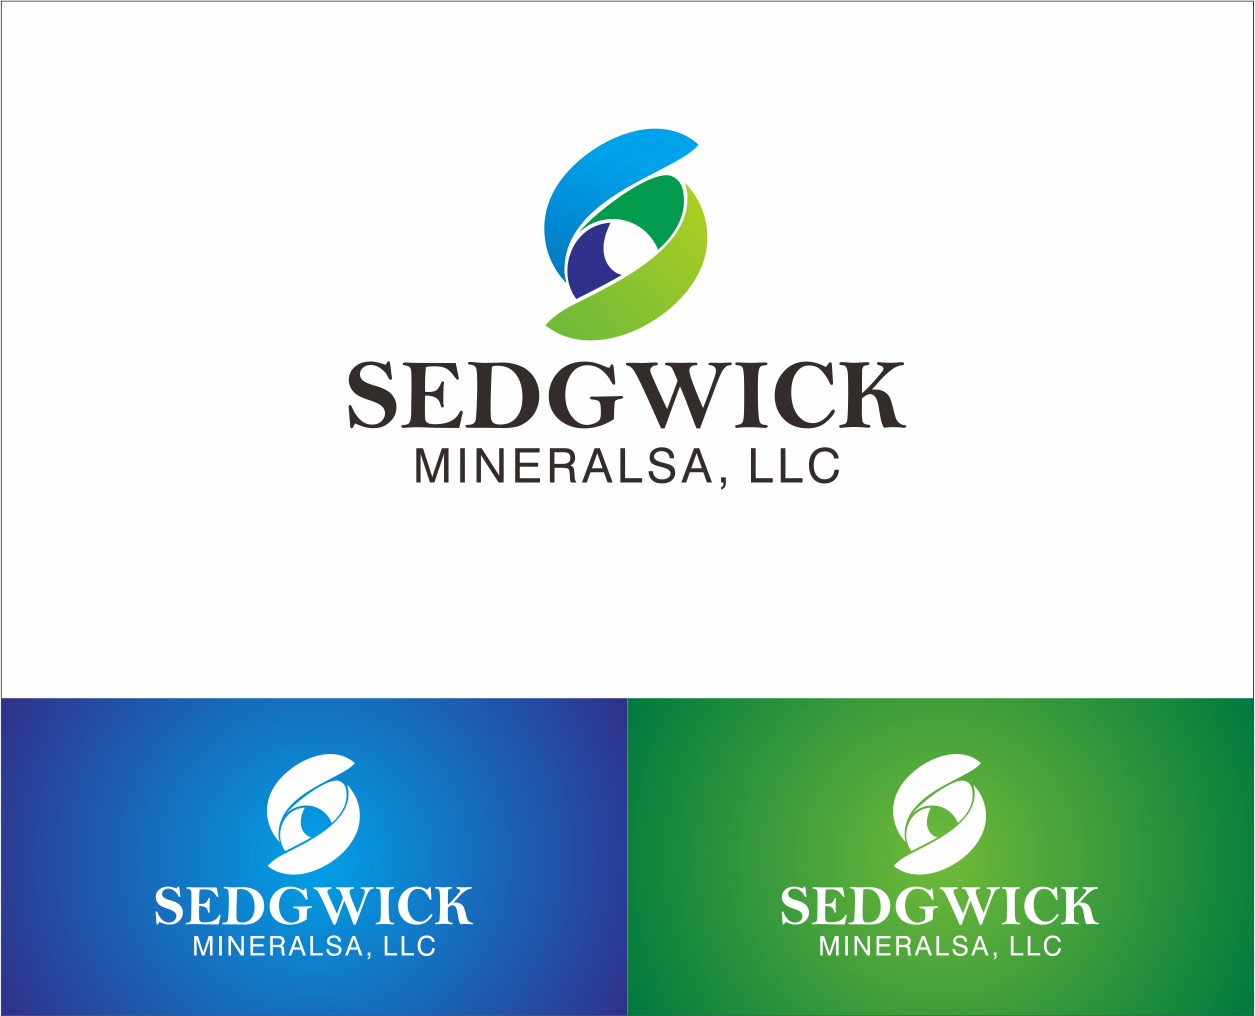 Logo Design by Armada Jamaluddin - Entry No. 61 in the Logo Design Contest Inspiring Logo Design for Sedgwick Minerals, LLC.